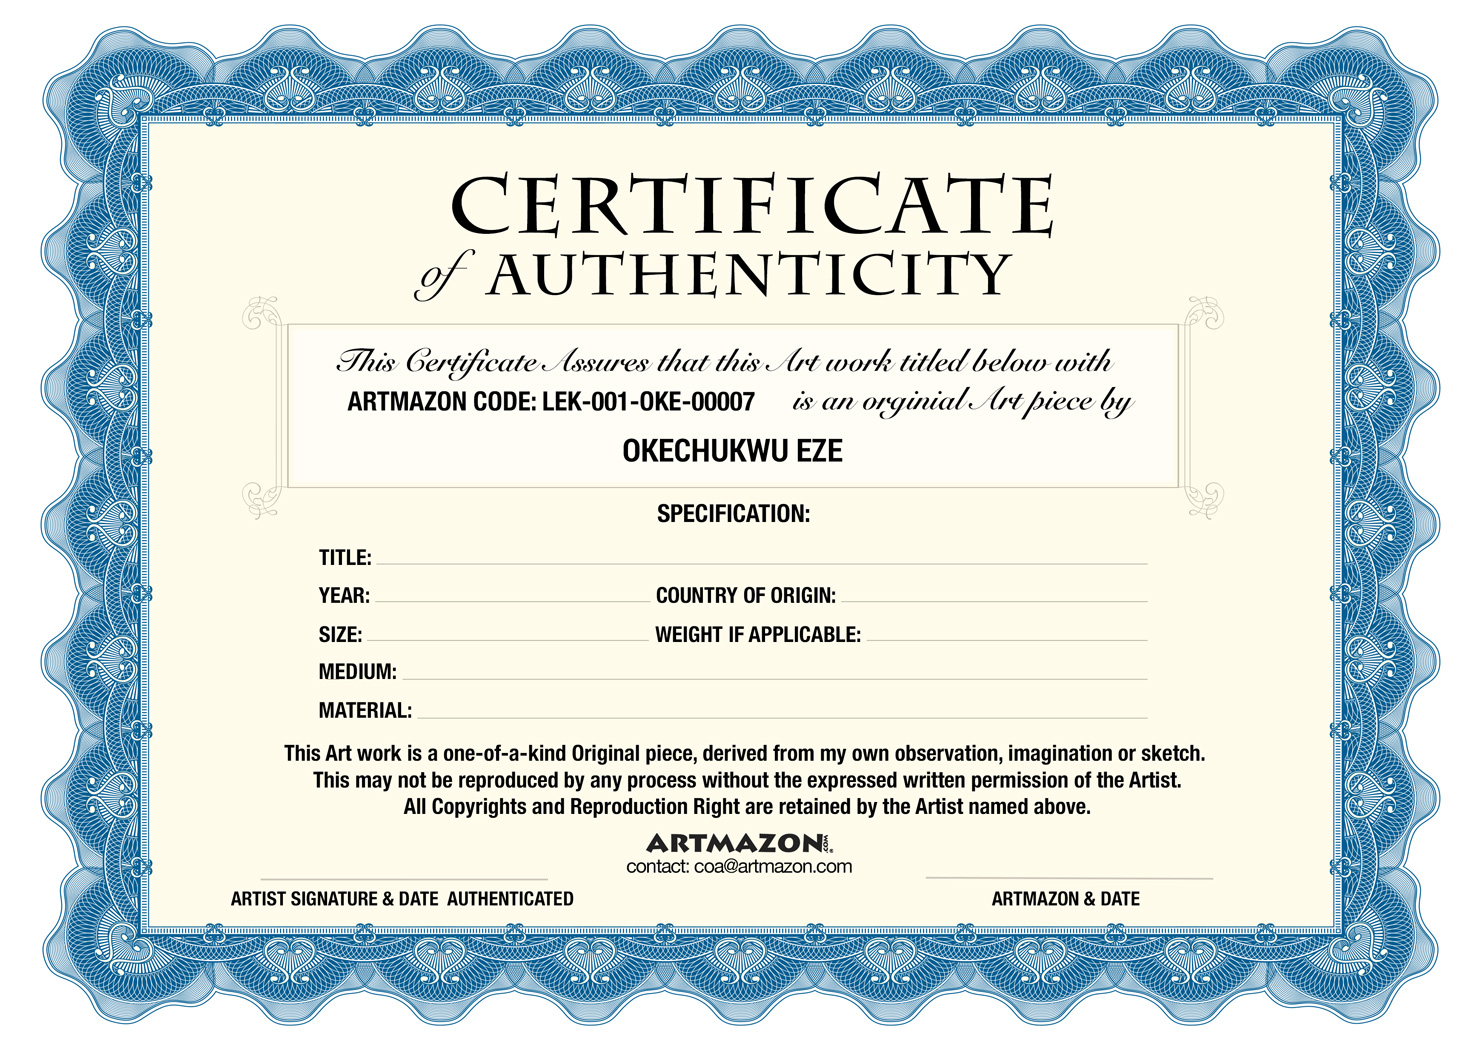 COA (Certificate of Authenticity)